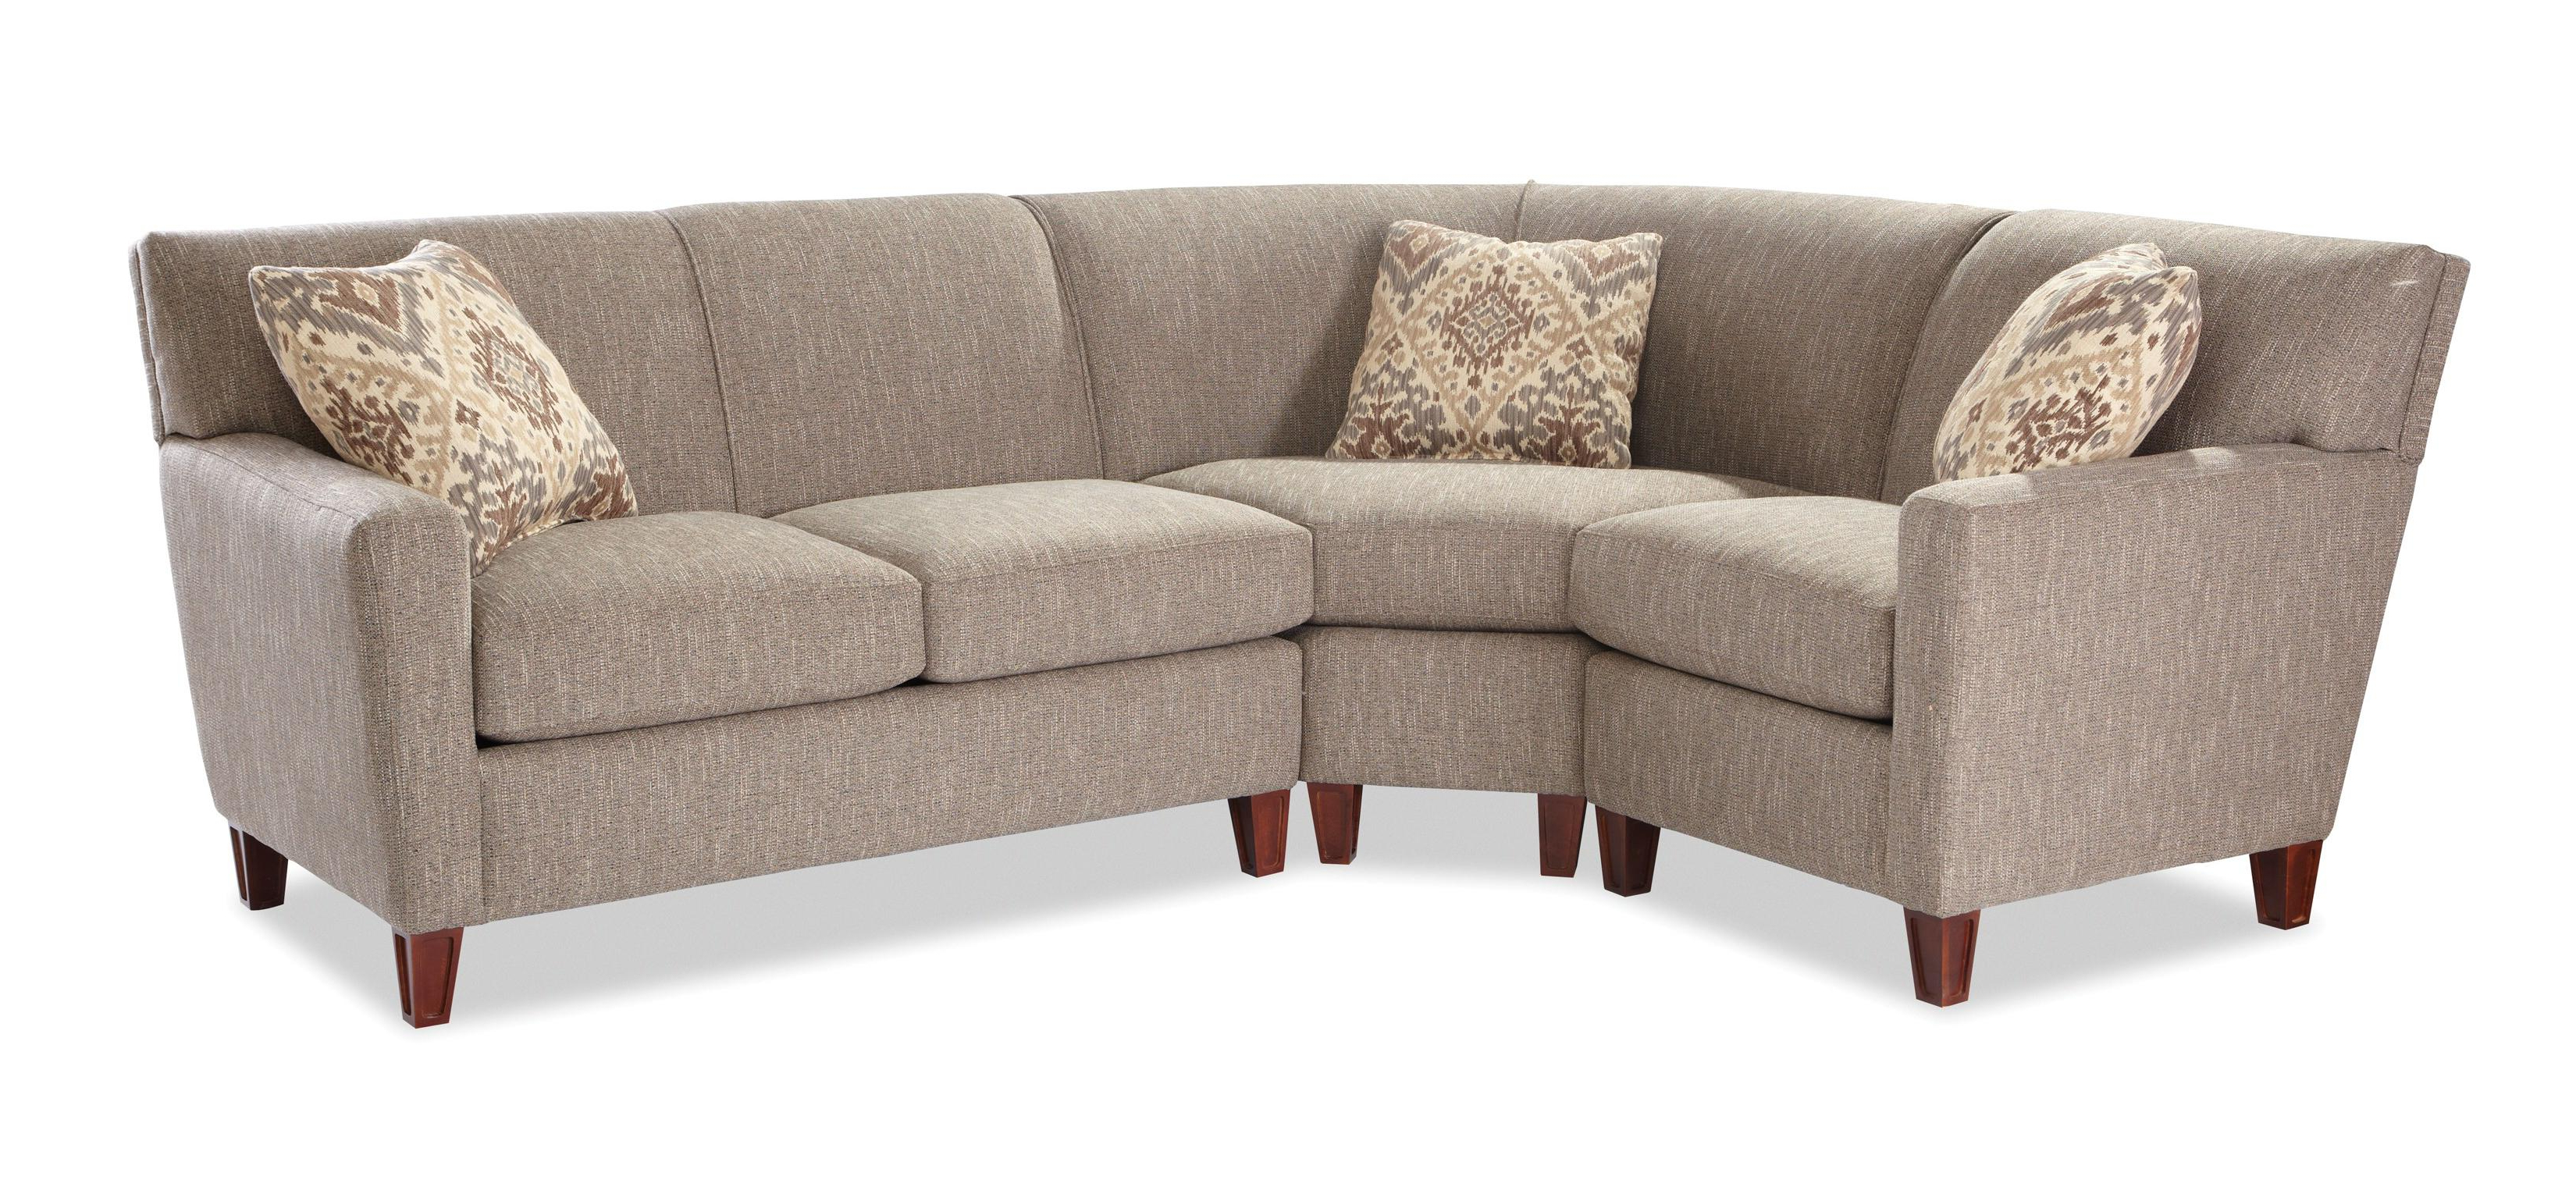 Recent Craftmaster 7864 Three Piece Sectional Sofa With Raf Loveseat For Josephine 2 Piece Sectionals With Laf Sofa (View 16 of 20)